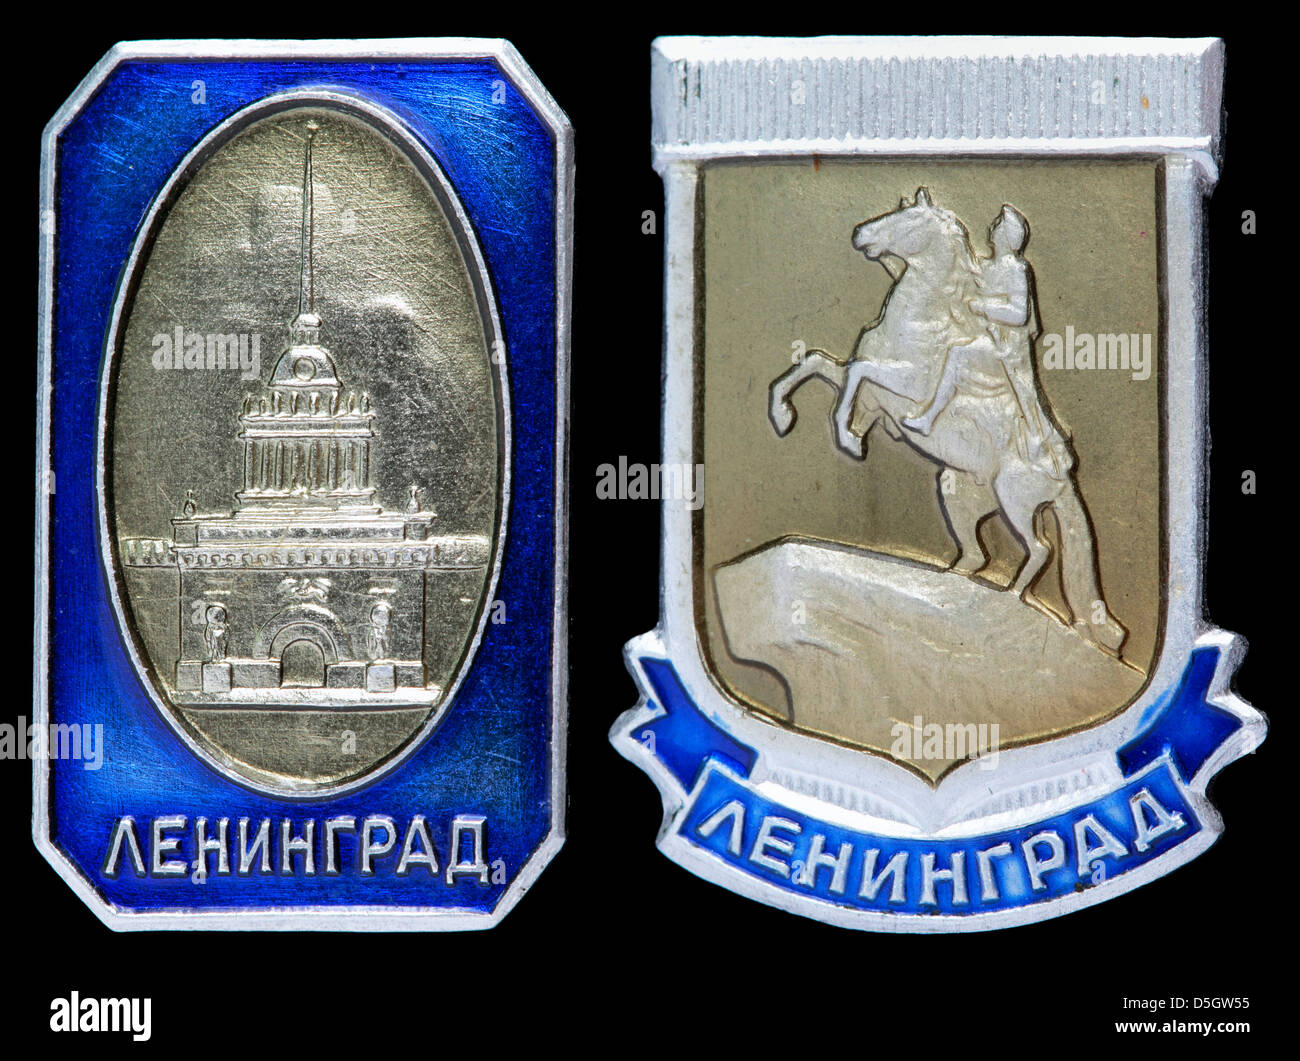 pin badge with Leningrad (St. Petersburg) monuments, Russia, 1980s - Stock Image